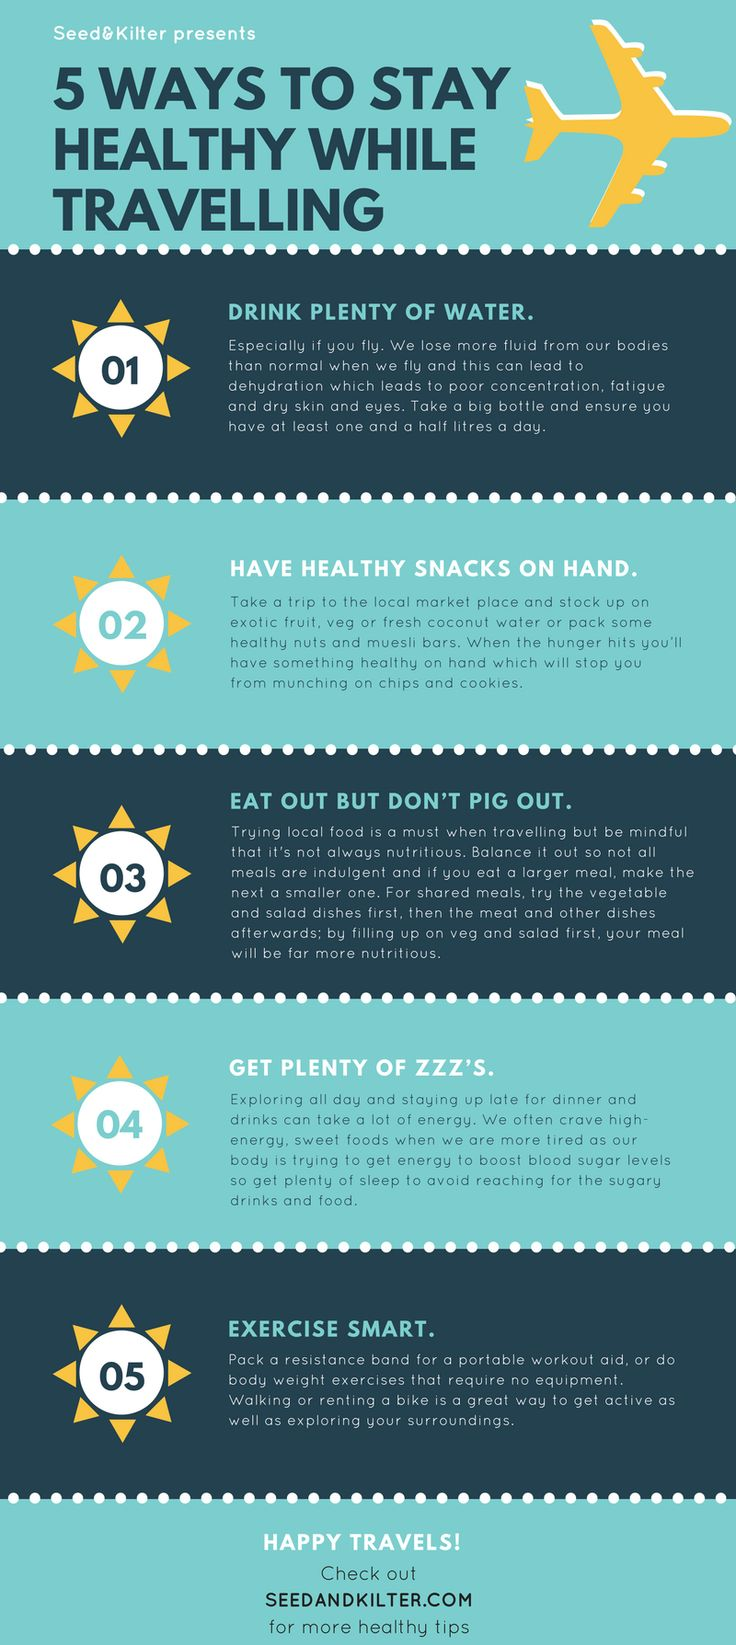 Stay fit and healthy while travelling with these 5 tips.